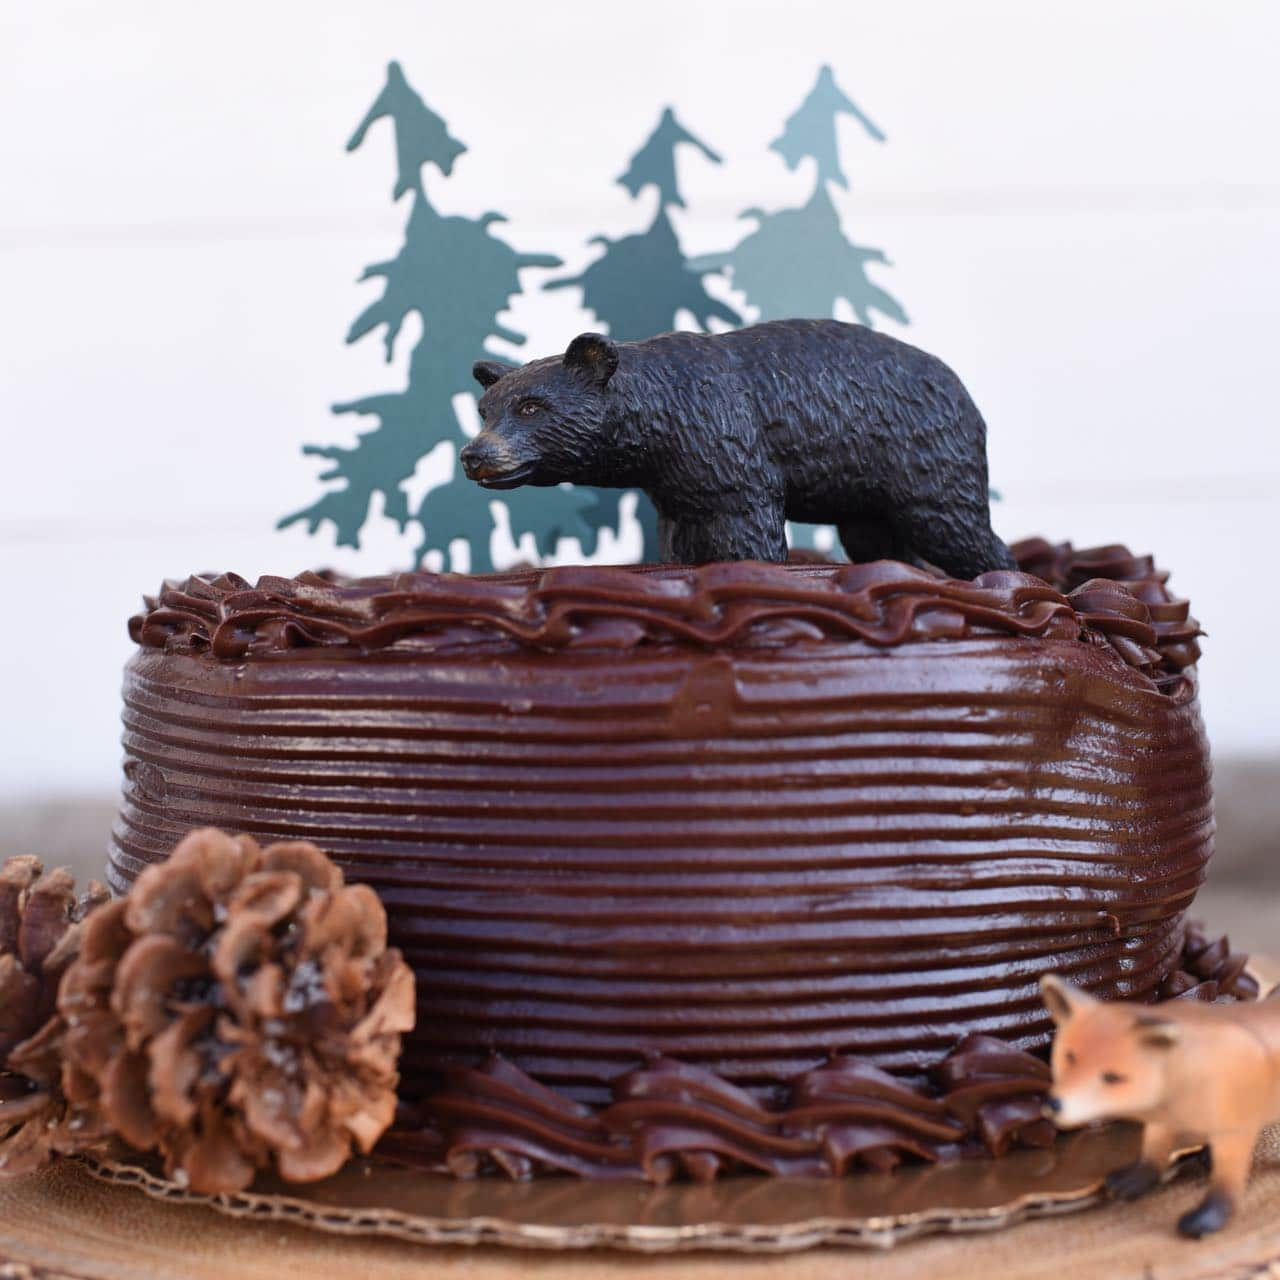 Camping cake for a backyard camping party (using a store-bought cake!)